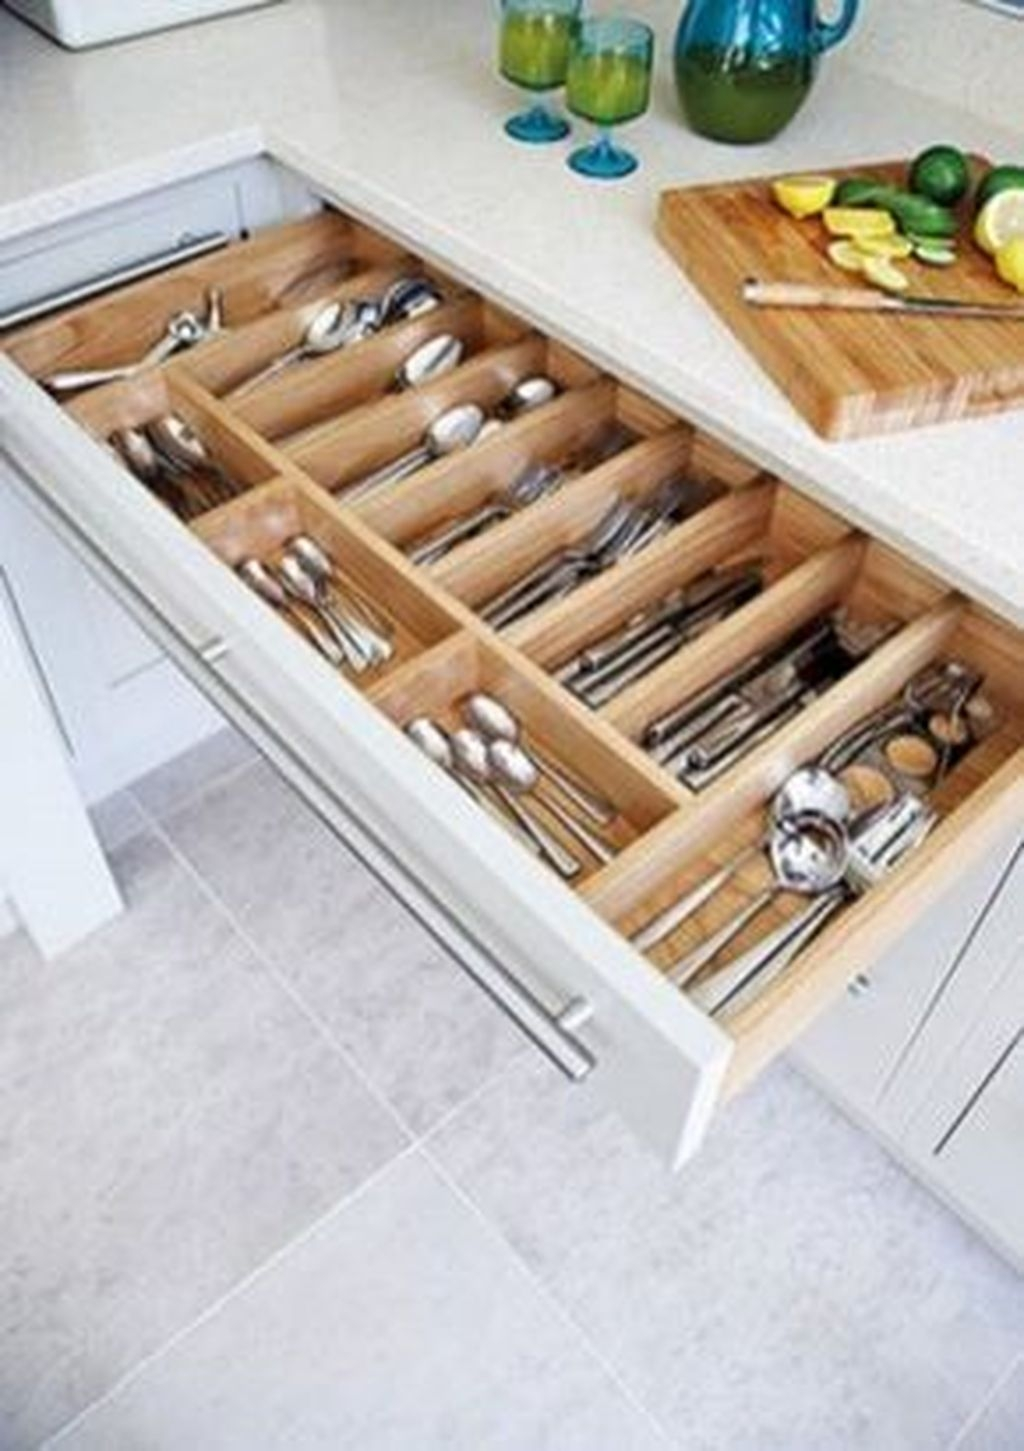 Inspiring Kitchen Storage Design Ideas 04